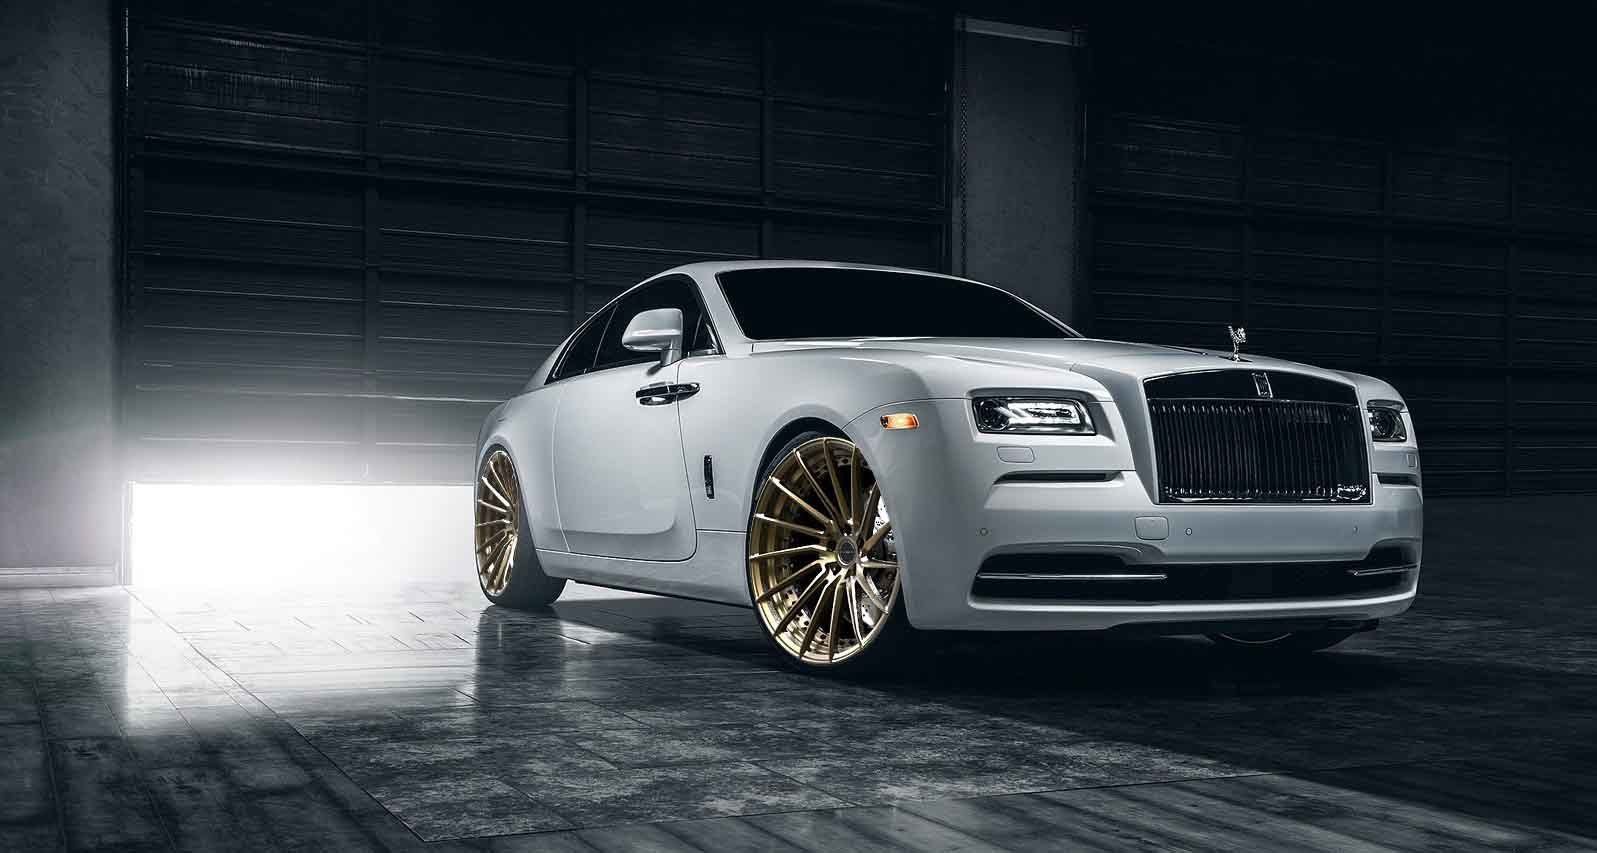 images-products-1-2938-232975226-white-rolls-royce-wraith-brixton-forged-r15-duo-series-wheels-olympic-bronze.jpg